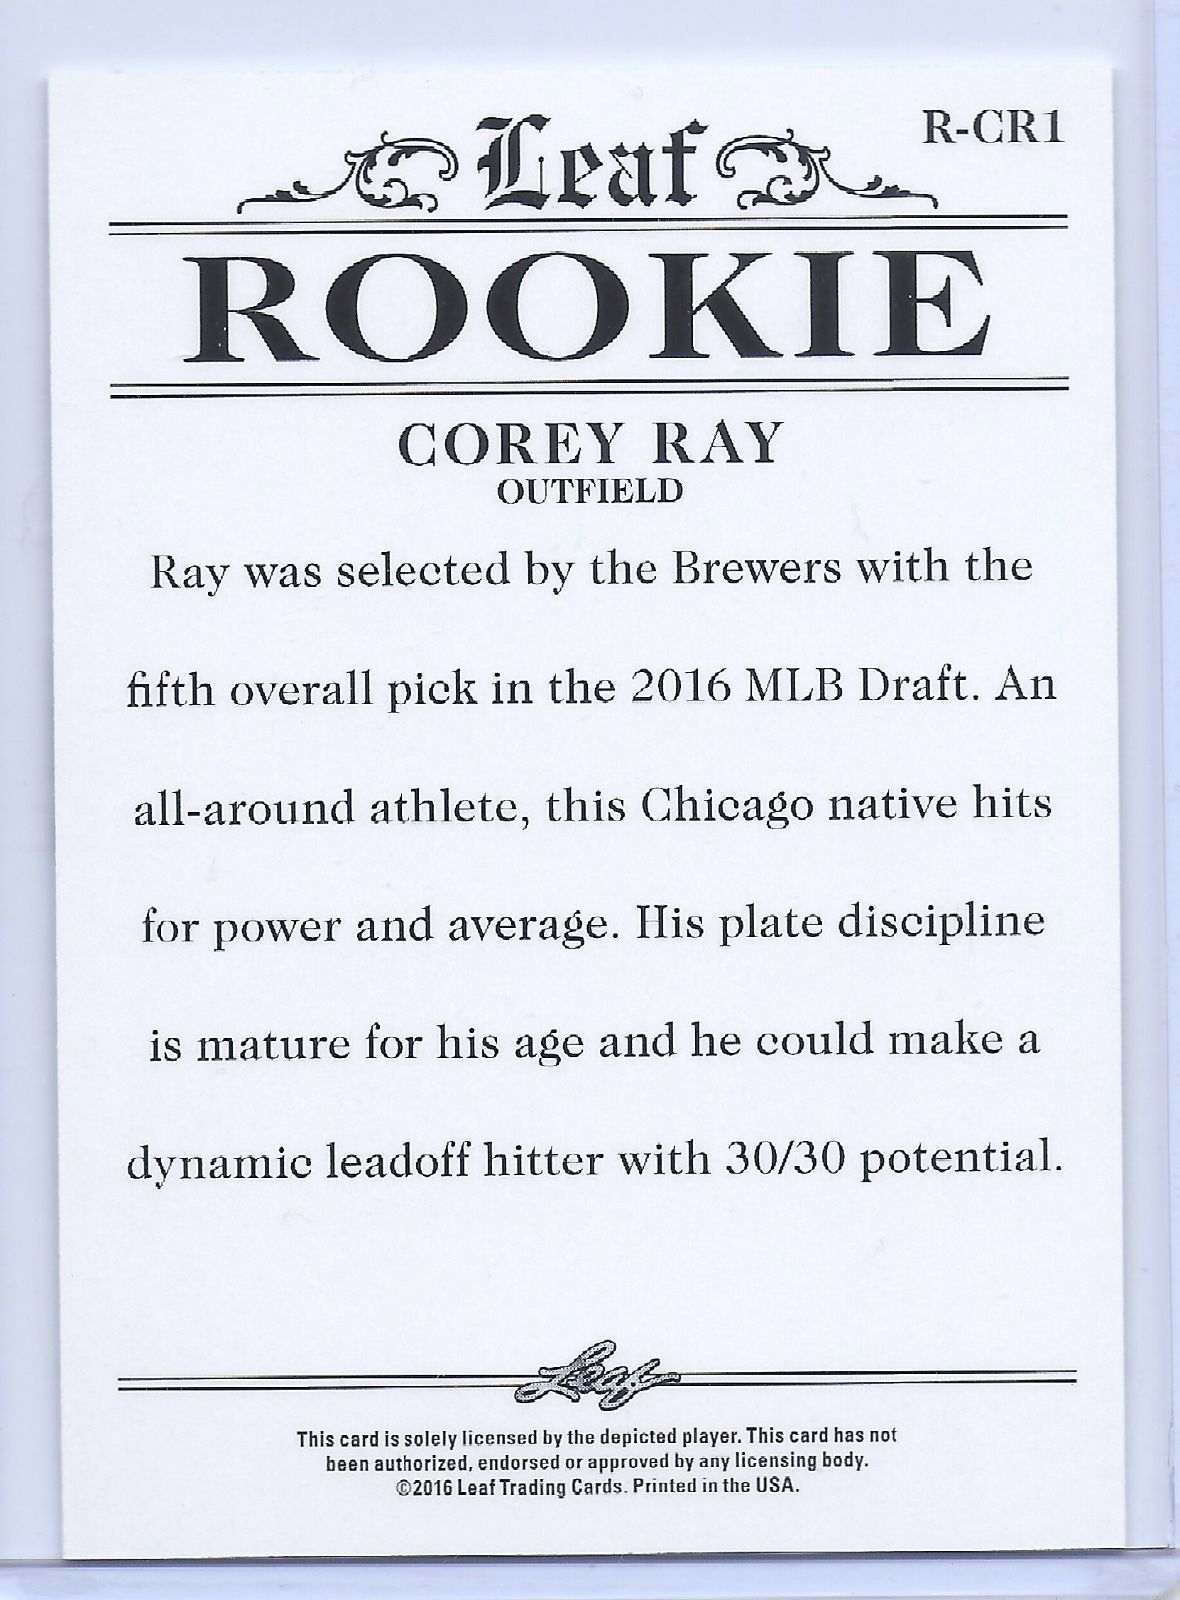 COREY RAY 2016 LEAF ROOKIES EXCLUSIVE ROOKIE CARD #R-CR1! MILWAUKEE BREWERS!